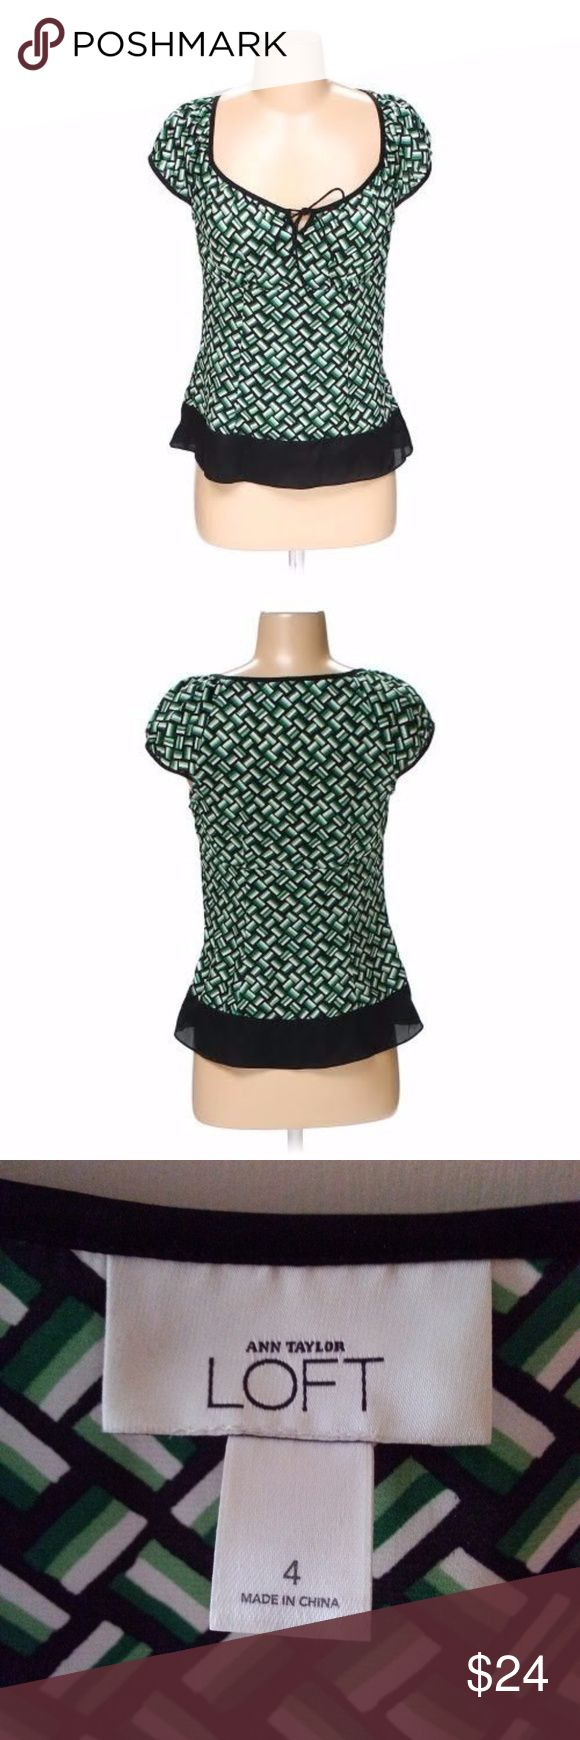 Anne Taylor Green Black Blouse Top Shirt Womens Women's Ann Taylor Loft Size 4 Blouse / Top / Shirt. Geometric design with colors of Black / Green/ and White. Has short sleeves with EUC Side zipper. Nice sheer black rim around the bottom of shirt. Excellent condition. Pre-owned, with no visible signs of wear. Anne Taylor Loft Tops Blouses